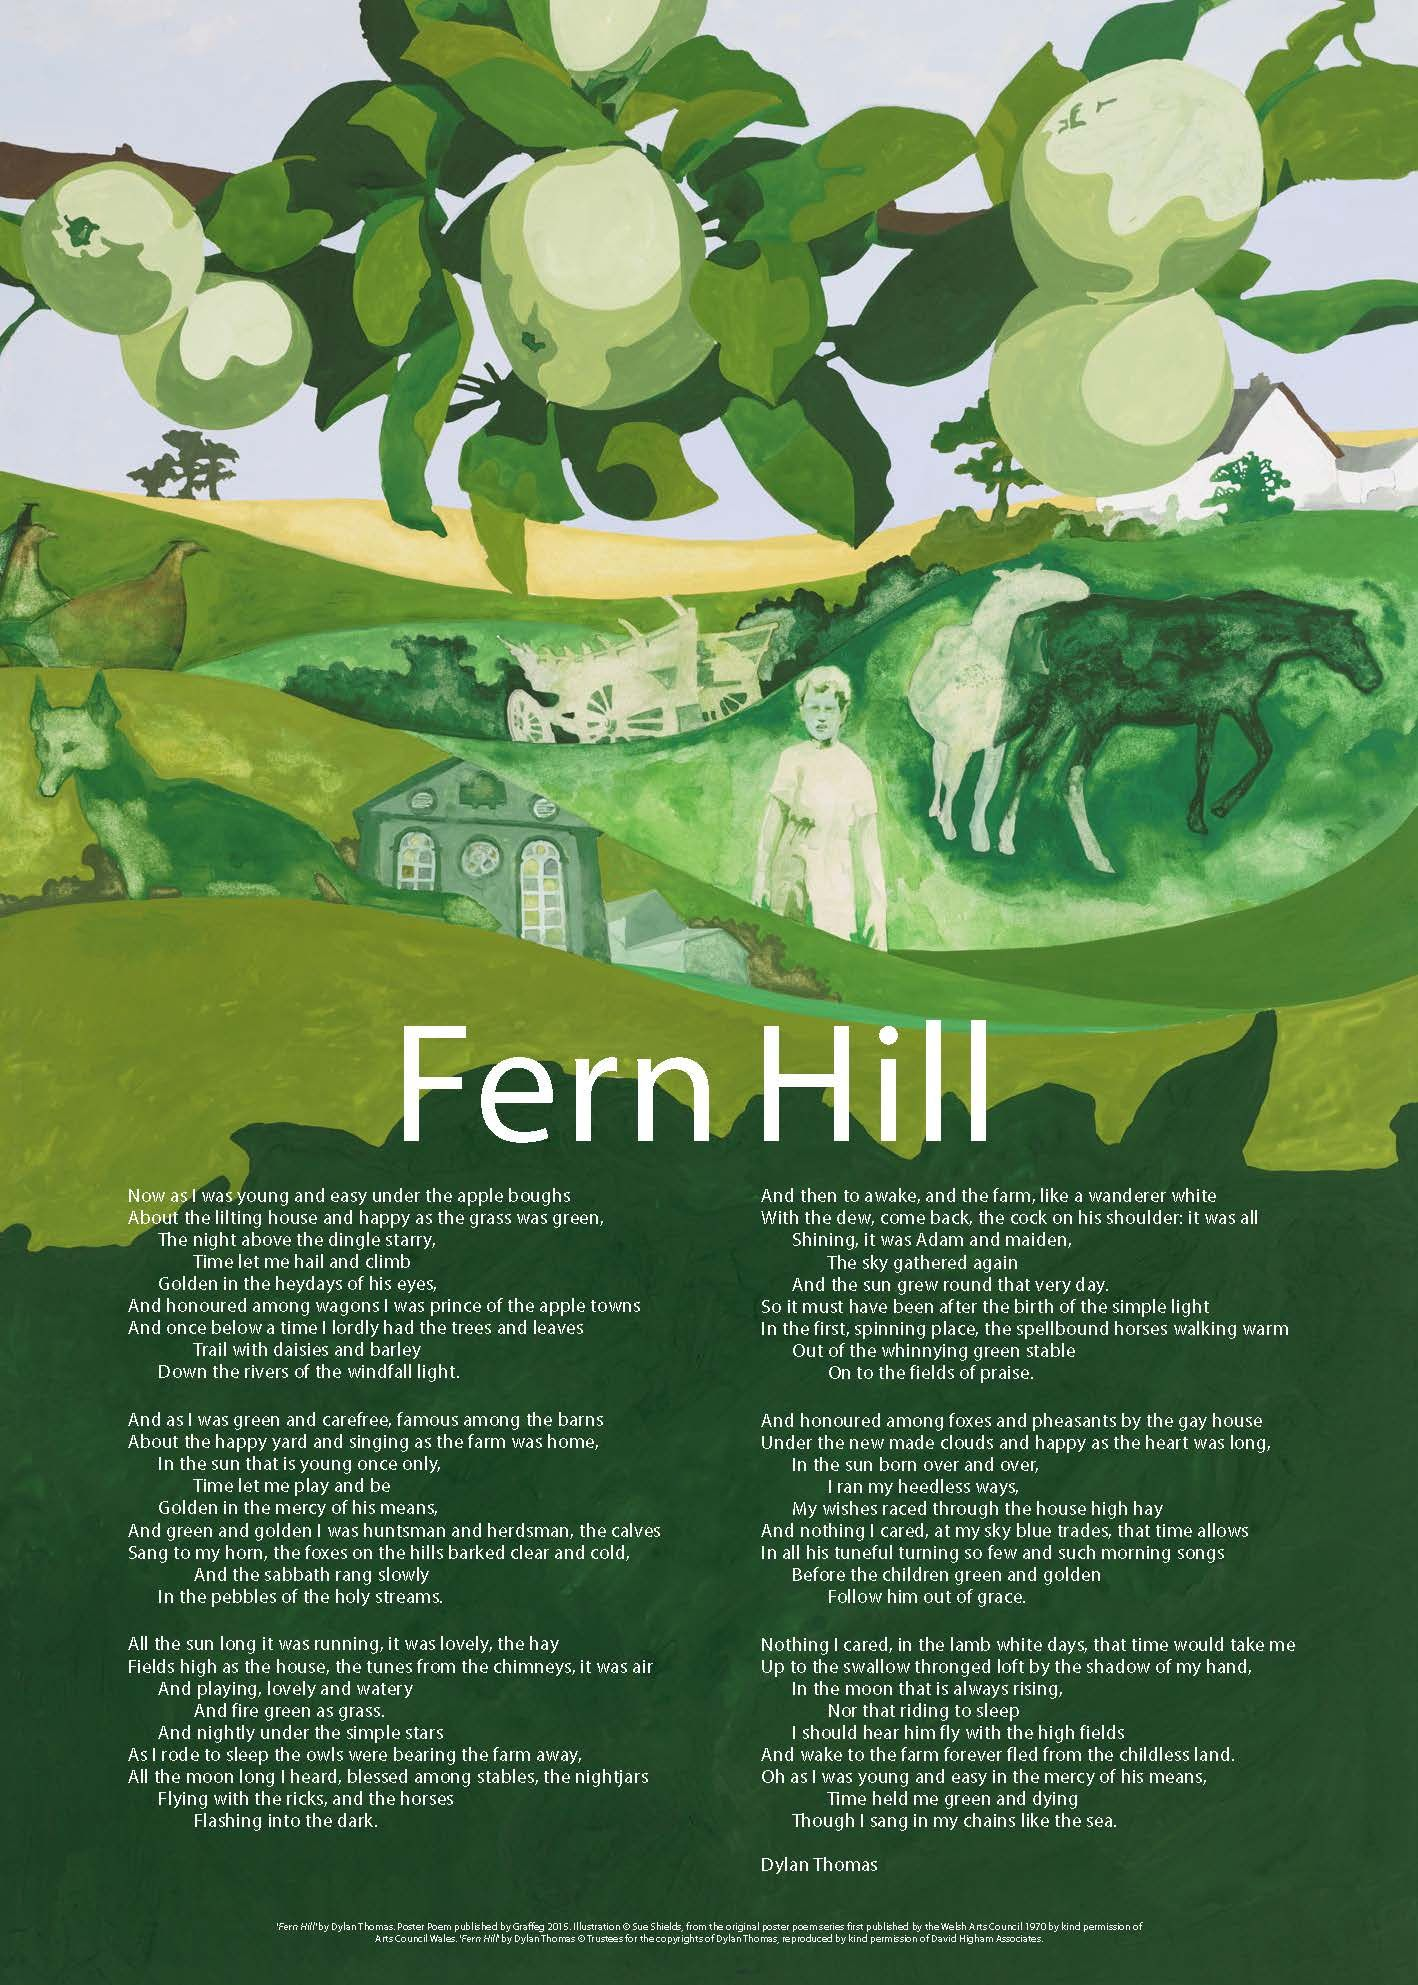 a literary analysis of fern hill by dylan thomas Dylan thomas´s fern hill as an autobiographical anglo-welsh poem - carol petri - seminar paper - english language and literature studies - literature - publish your bachelor's or master's thesis, dissertation, term paper or essay.